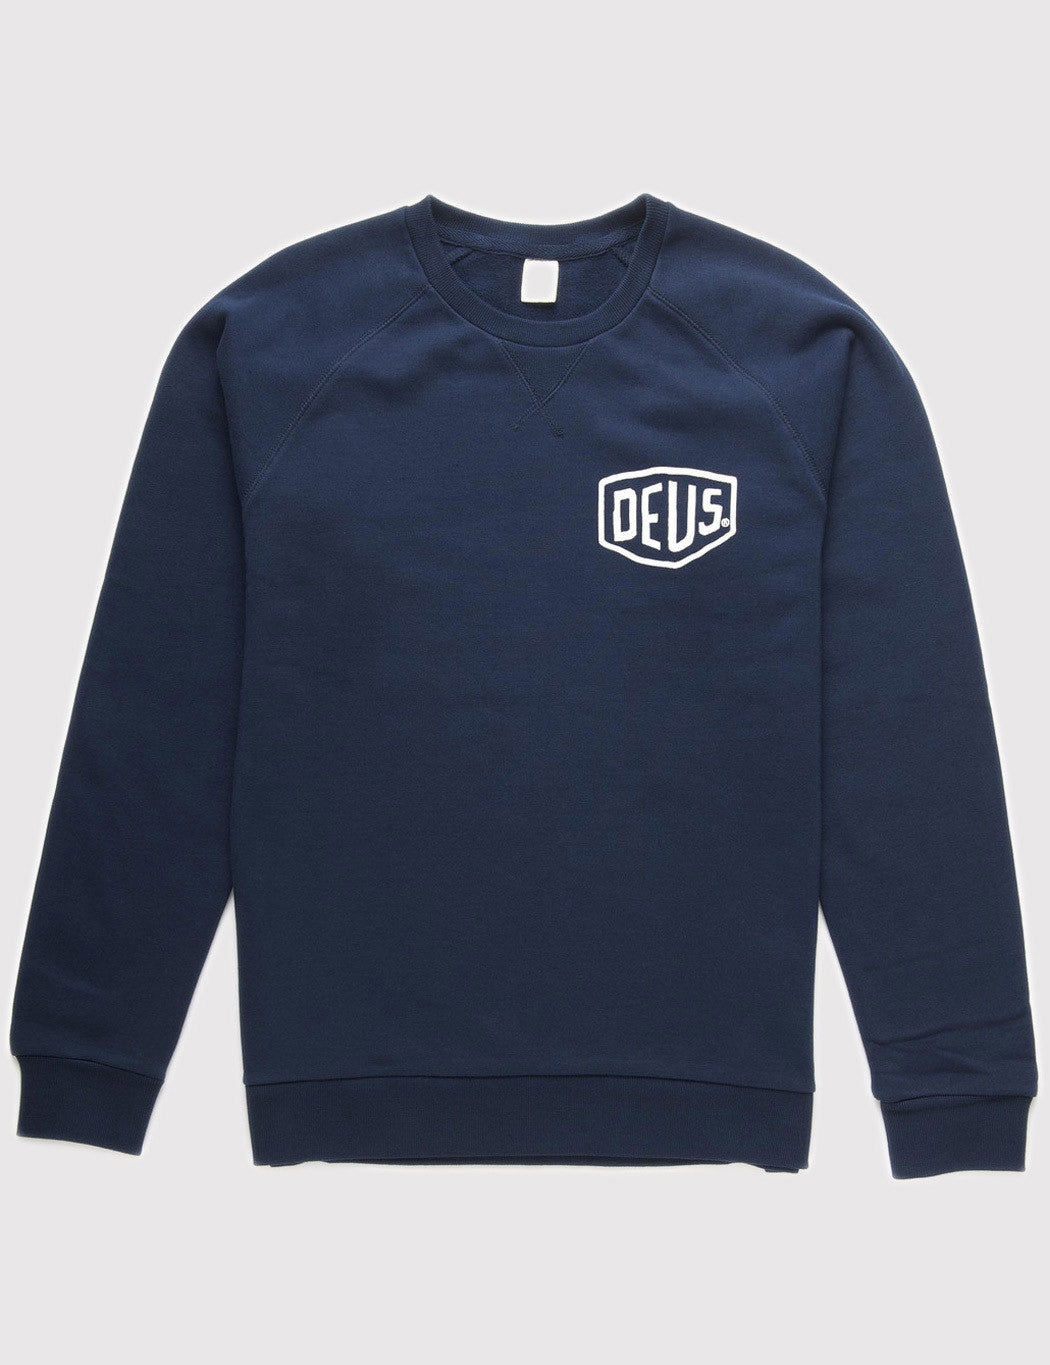 Deus Ex Machina Address Venice LA Sweatshirt - Navy